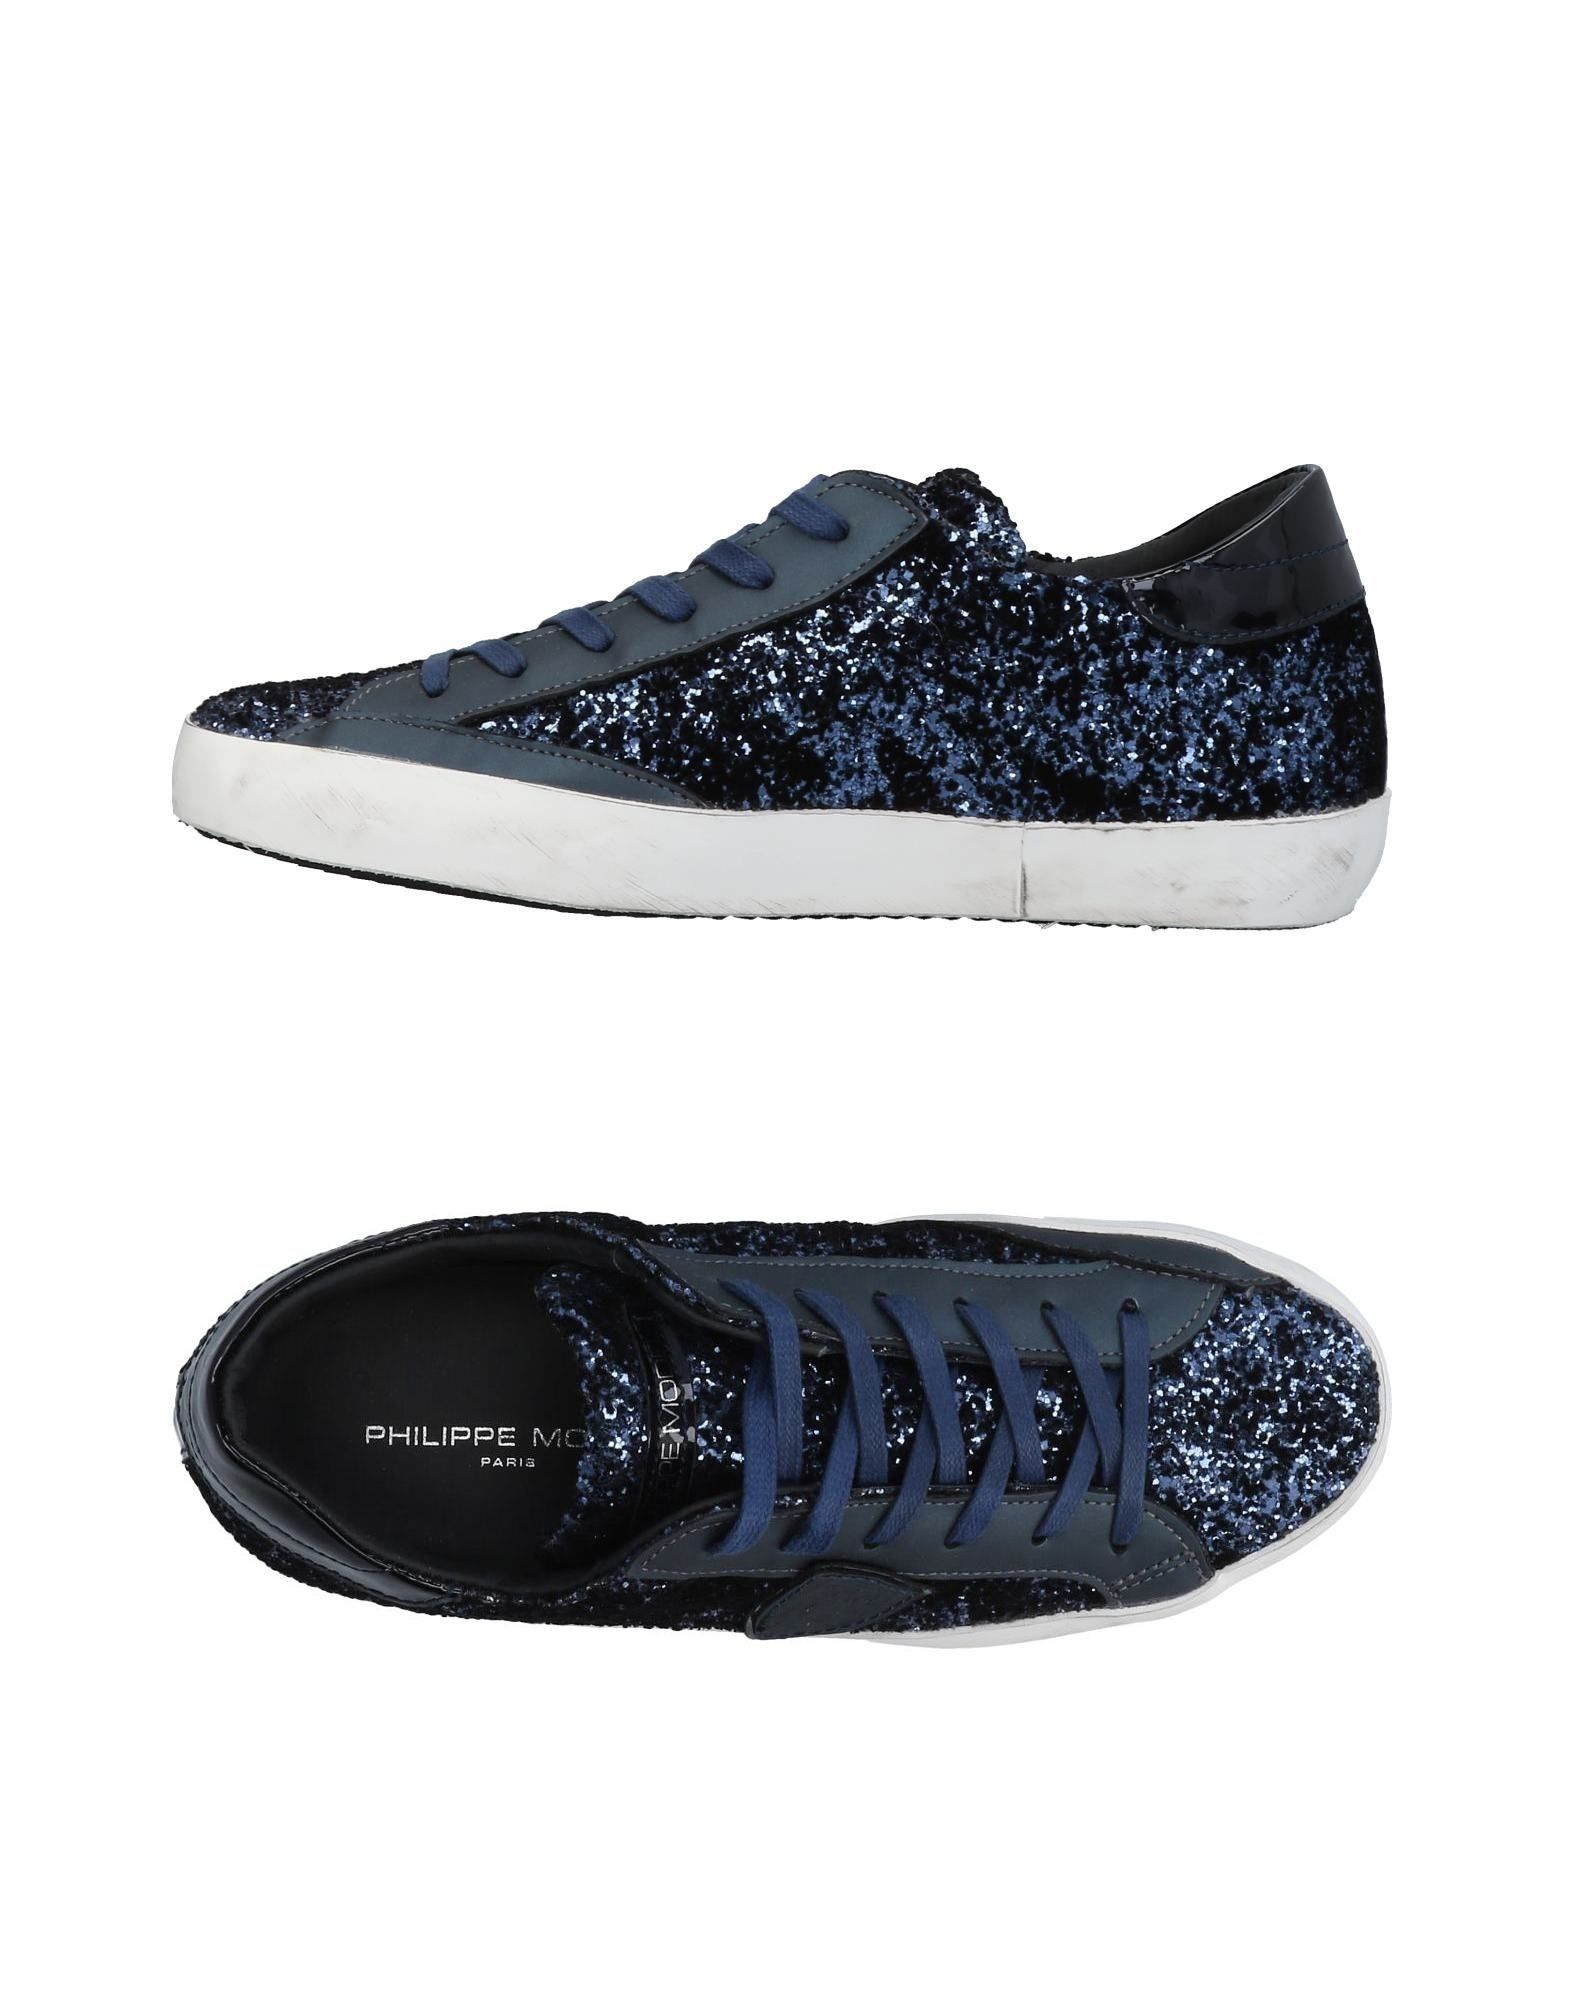 Philippe Model Sneakers Sneakers - Women Philippe Model Sneakers Sneakers online on  Australia - 11452513IE a1cf12